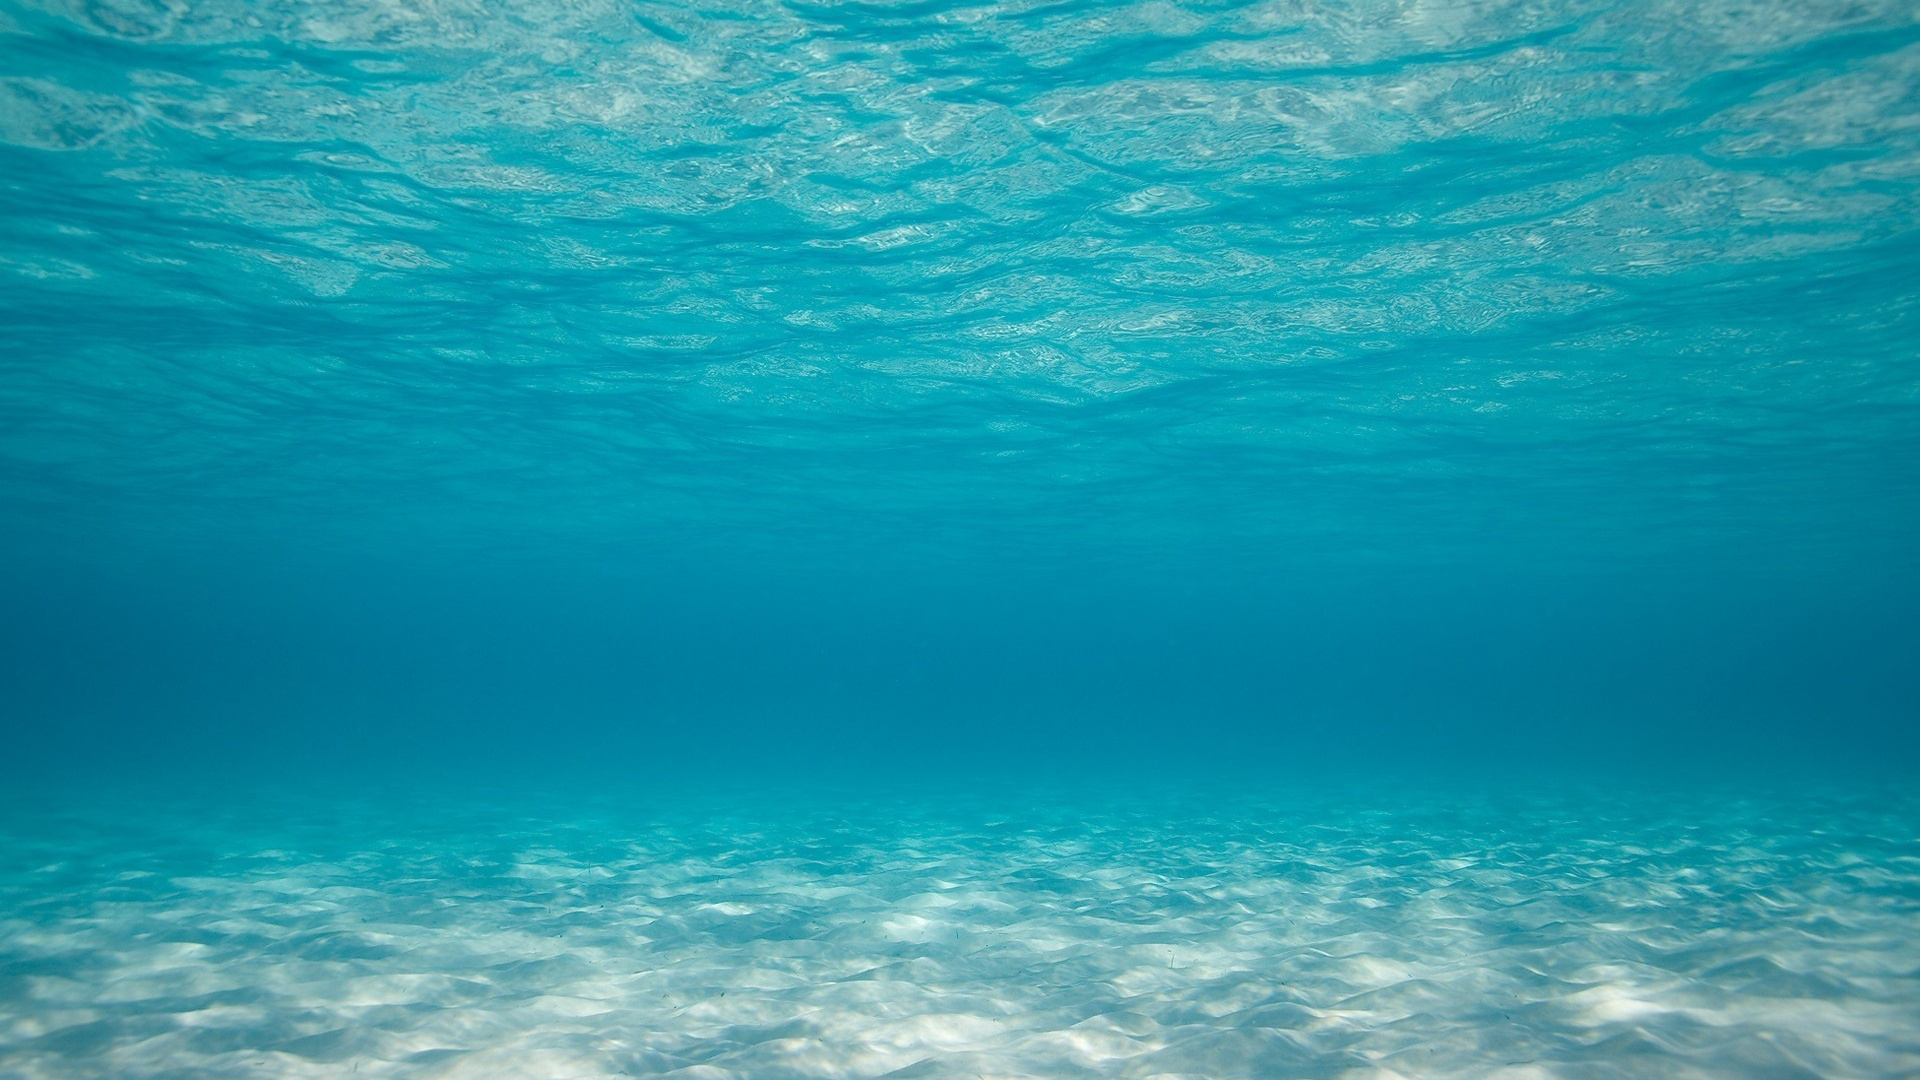 Deep Ocean Floor Paddle out to deeper water 1920x1080